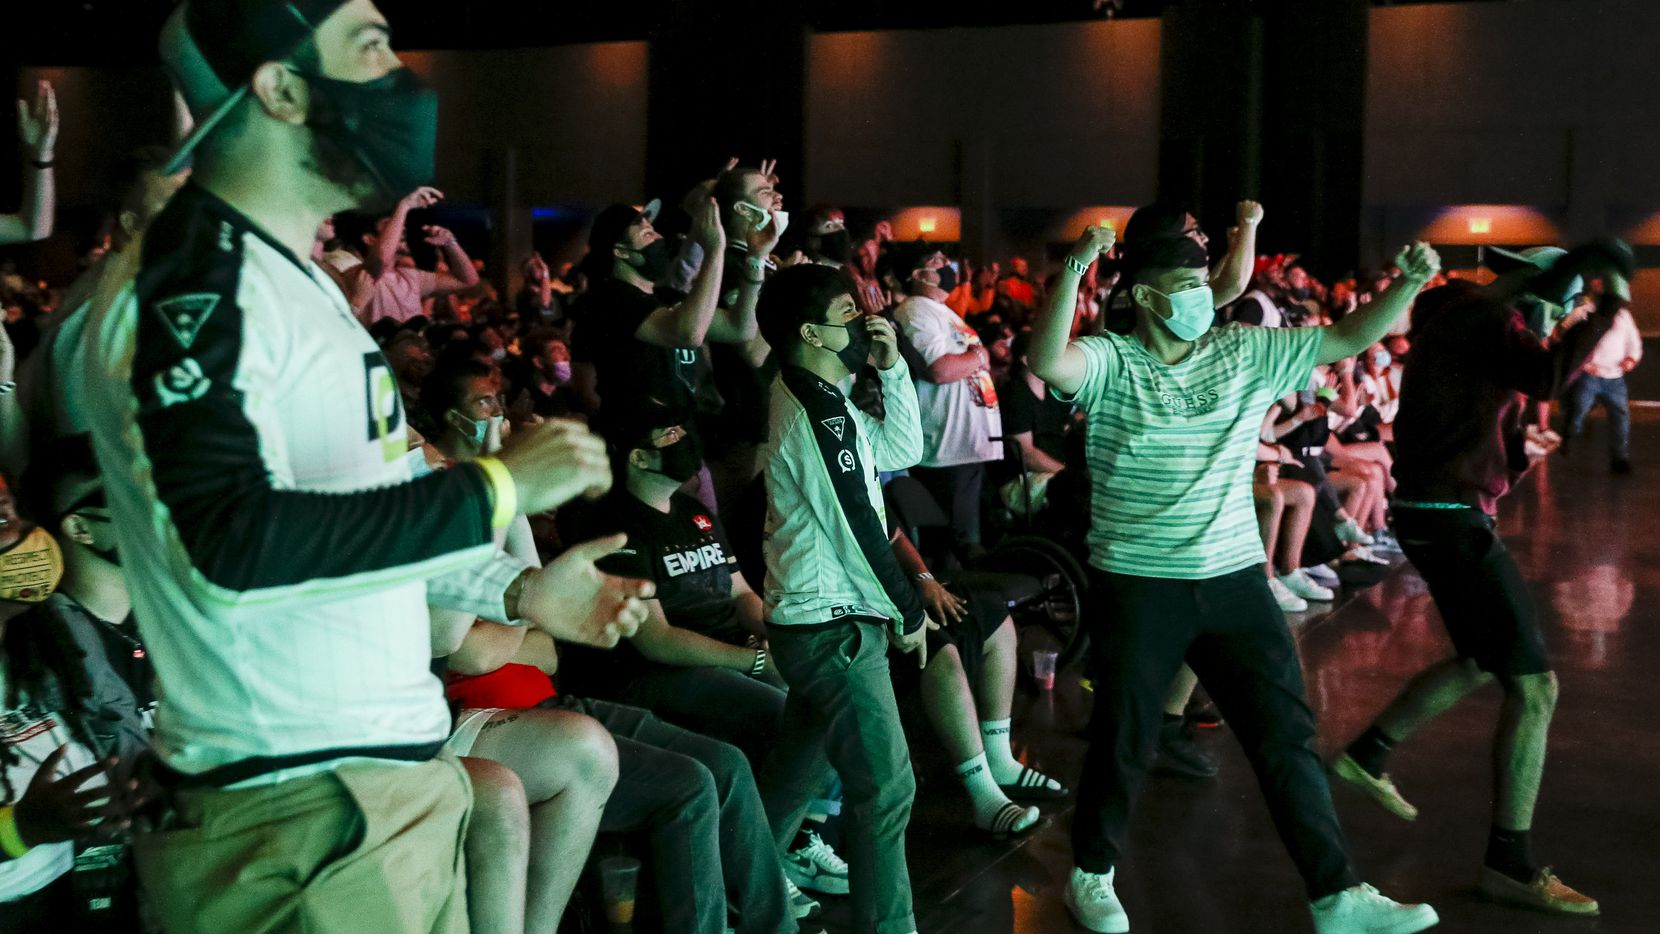 Fans react after Chicago OpTic win a game against Dallas Empire during the Call of Duty League Major V tournament at Esports Stadium Arlington on Sunday, Aug. 1, 2021, in Arlington. Empire finished 4th in the tournament after a 3-1 loss to OpTic. (Elias Valverde II/The Dallas Morning News)